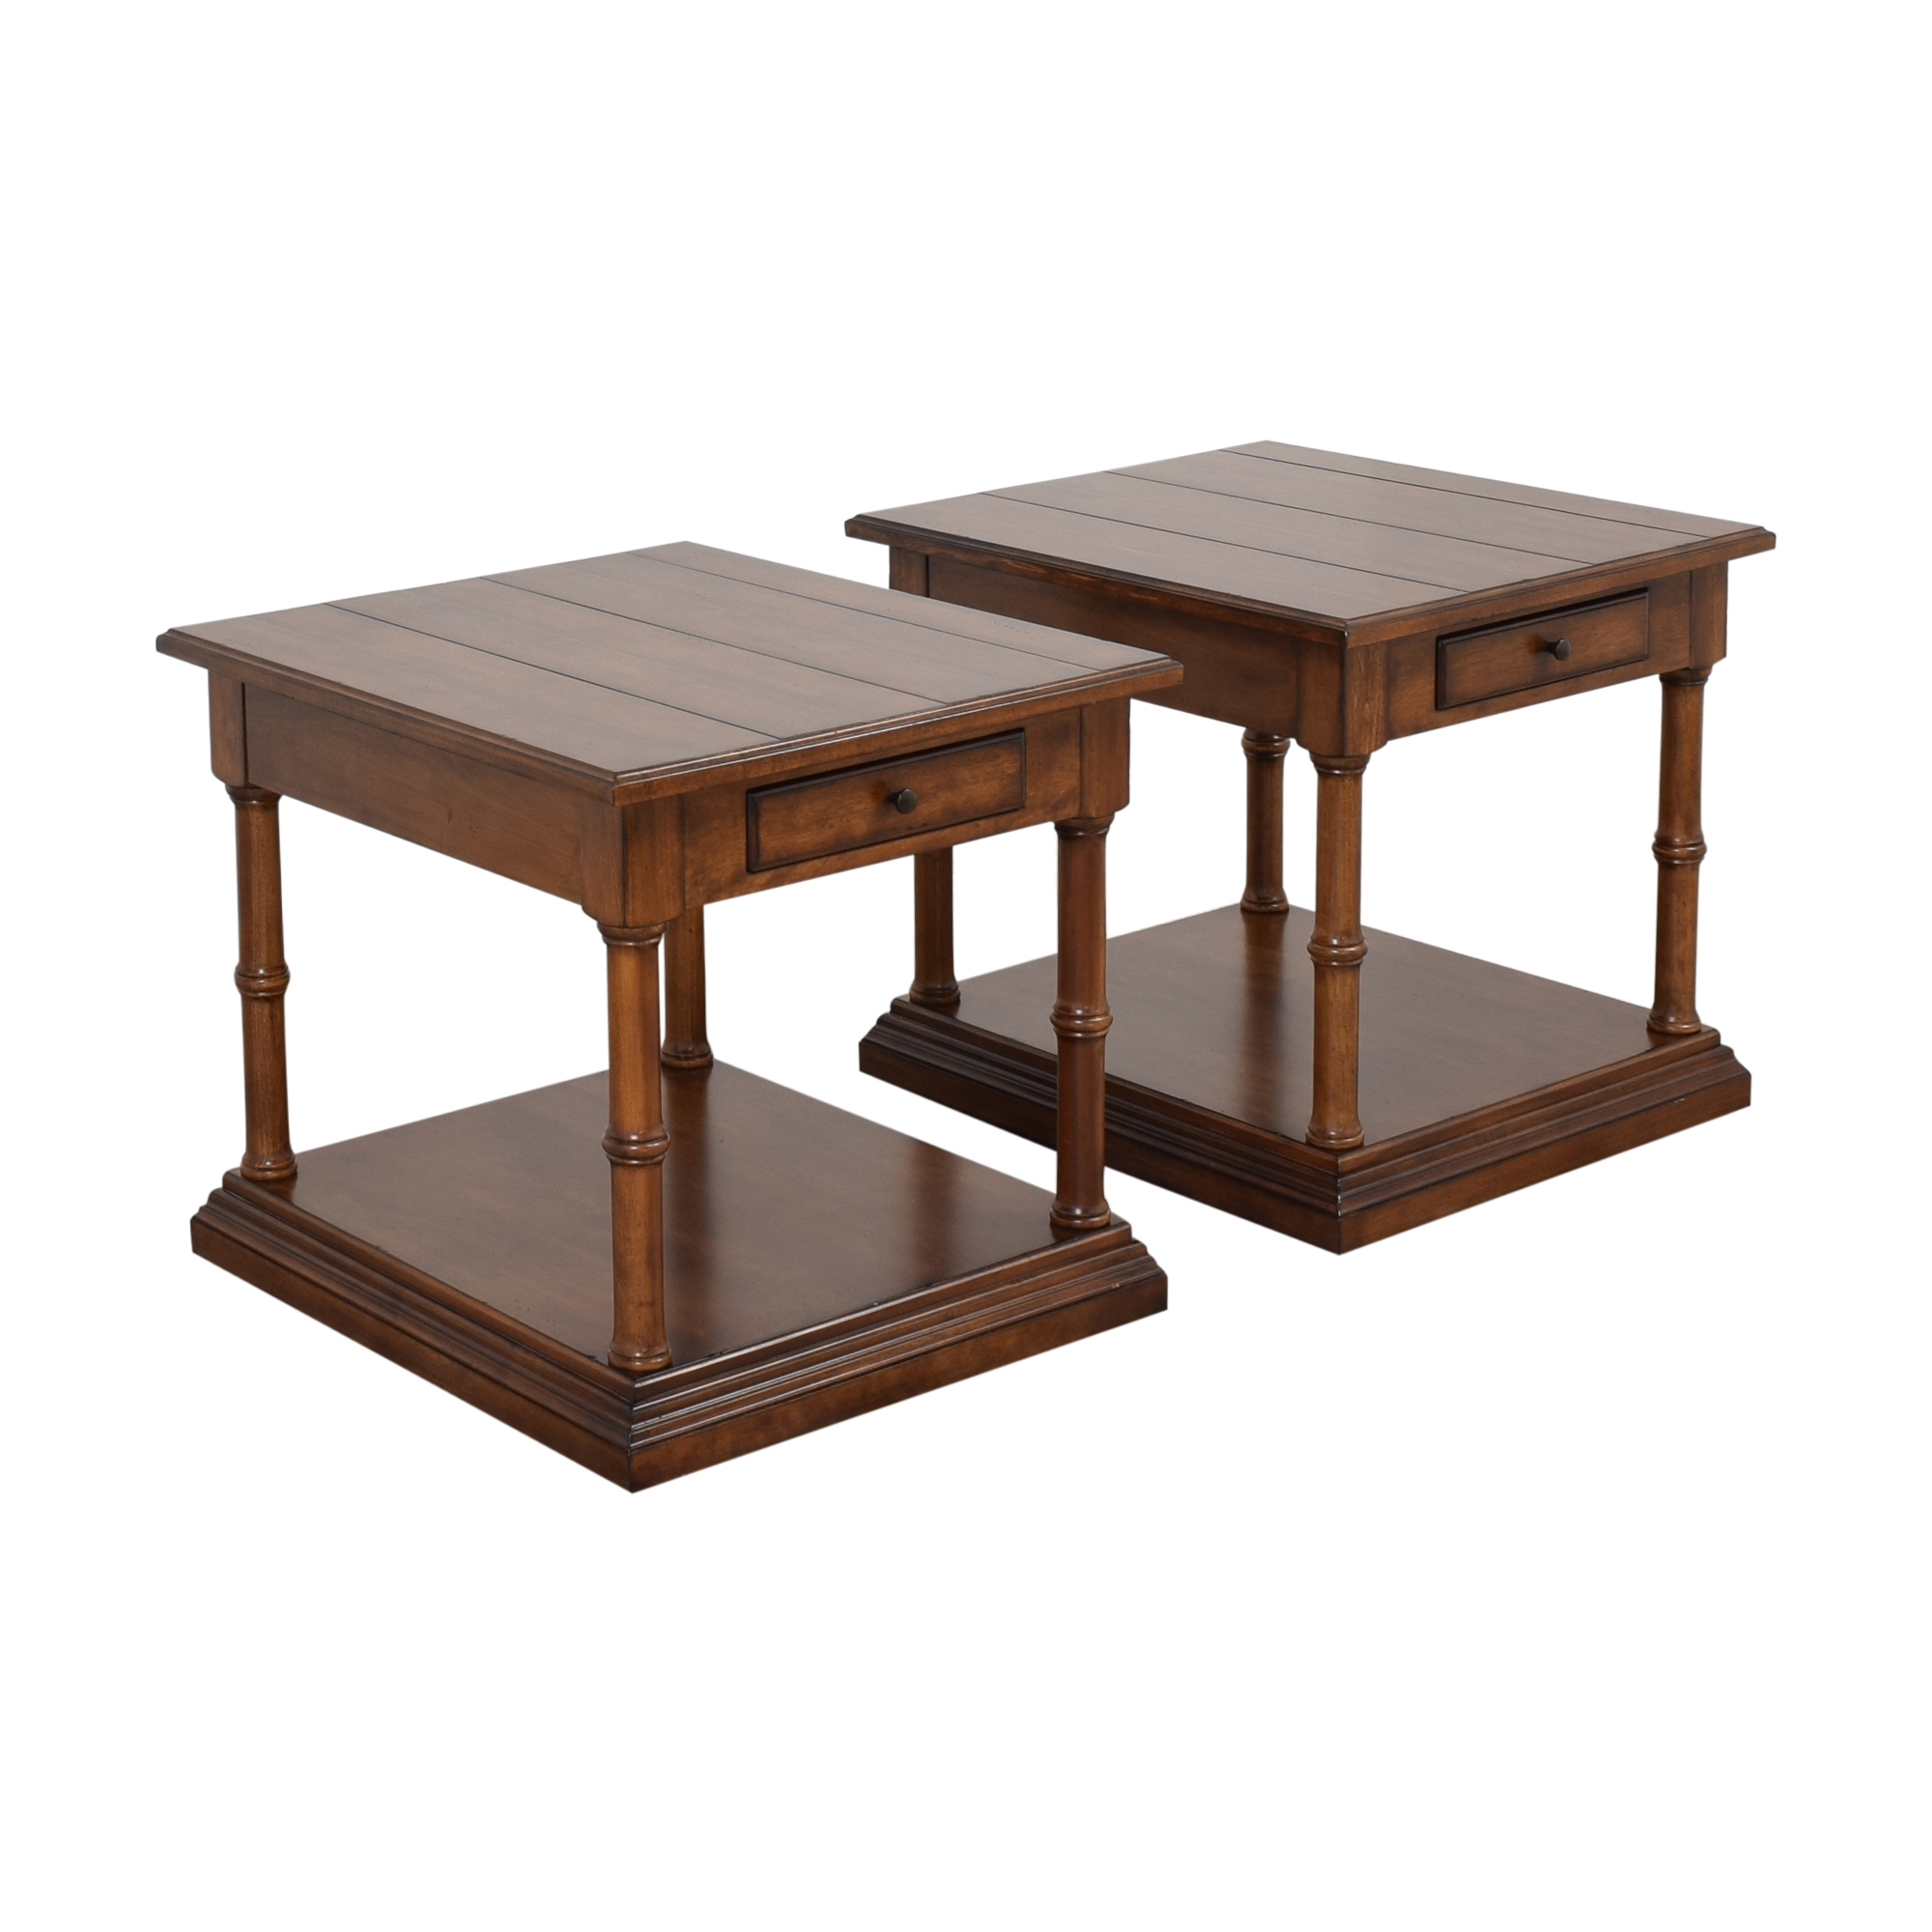 Thomasville Thomasville Two Tier End Tables price